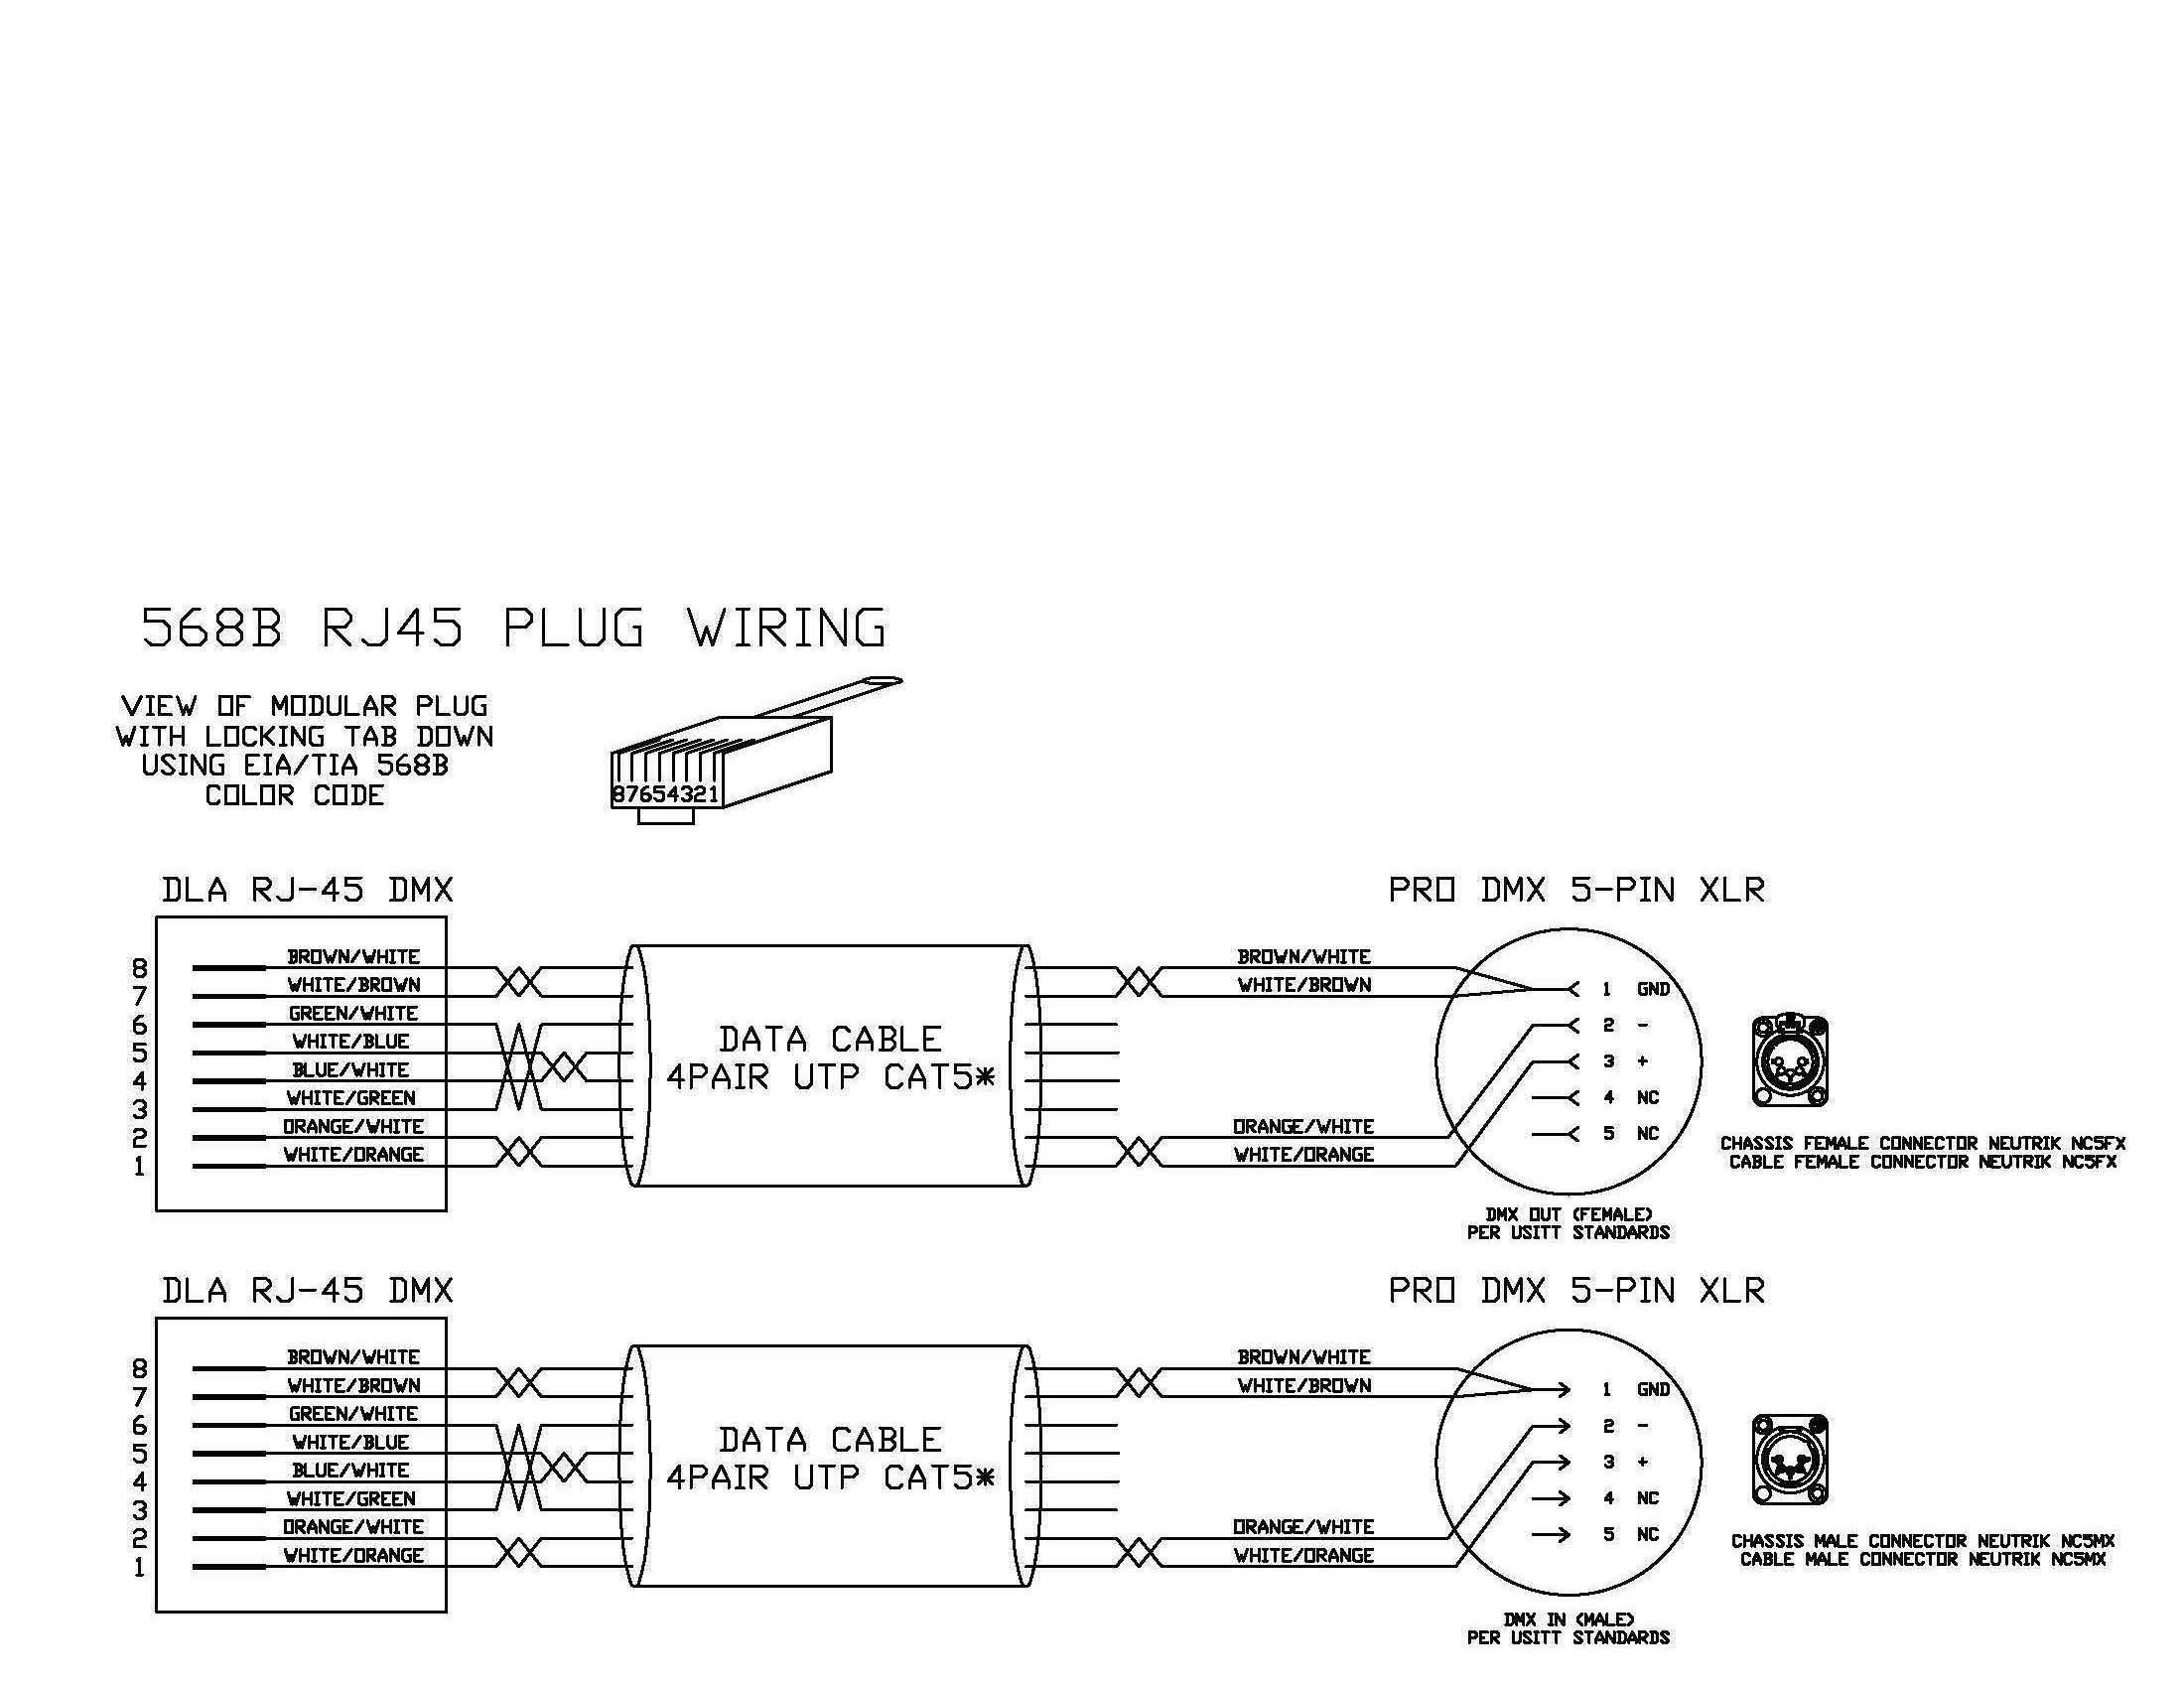 e975ddb6a839e630c21b81db05ca4fa6 xlr to rj45 wiring diagram xlr electrical wiring diagrams xlr wiring color codes at cos-gaming.co